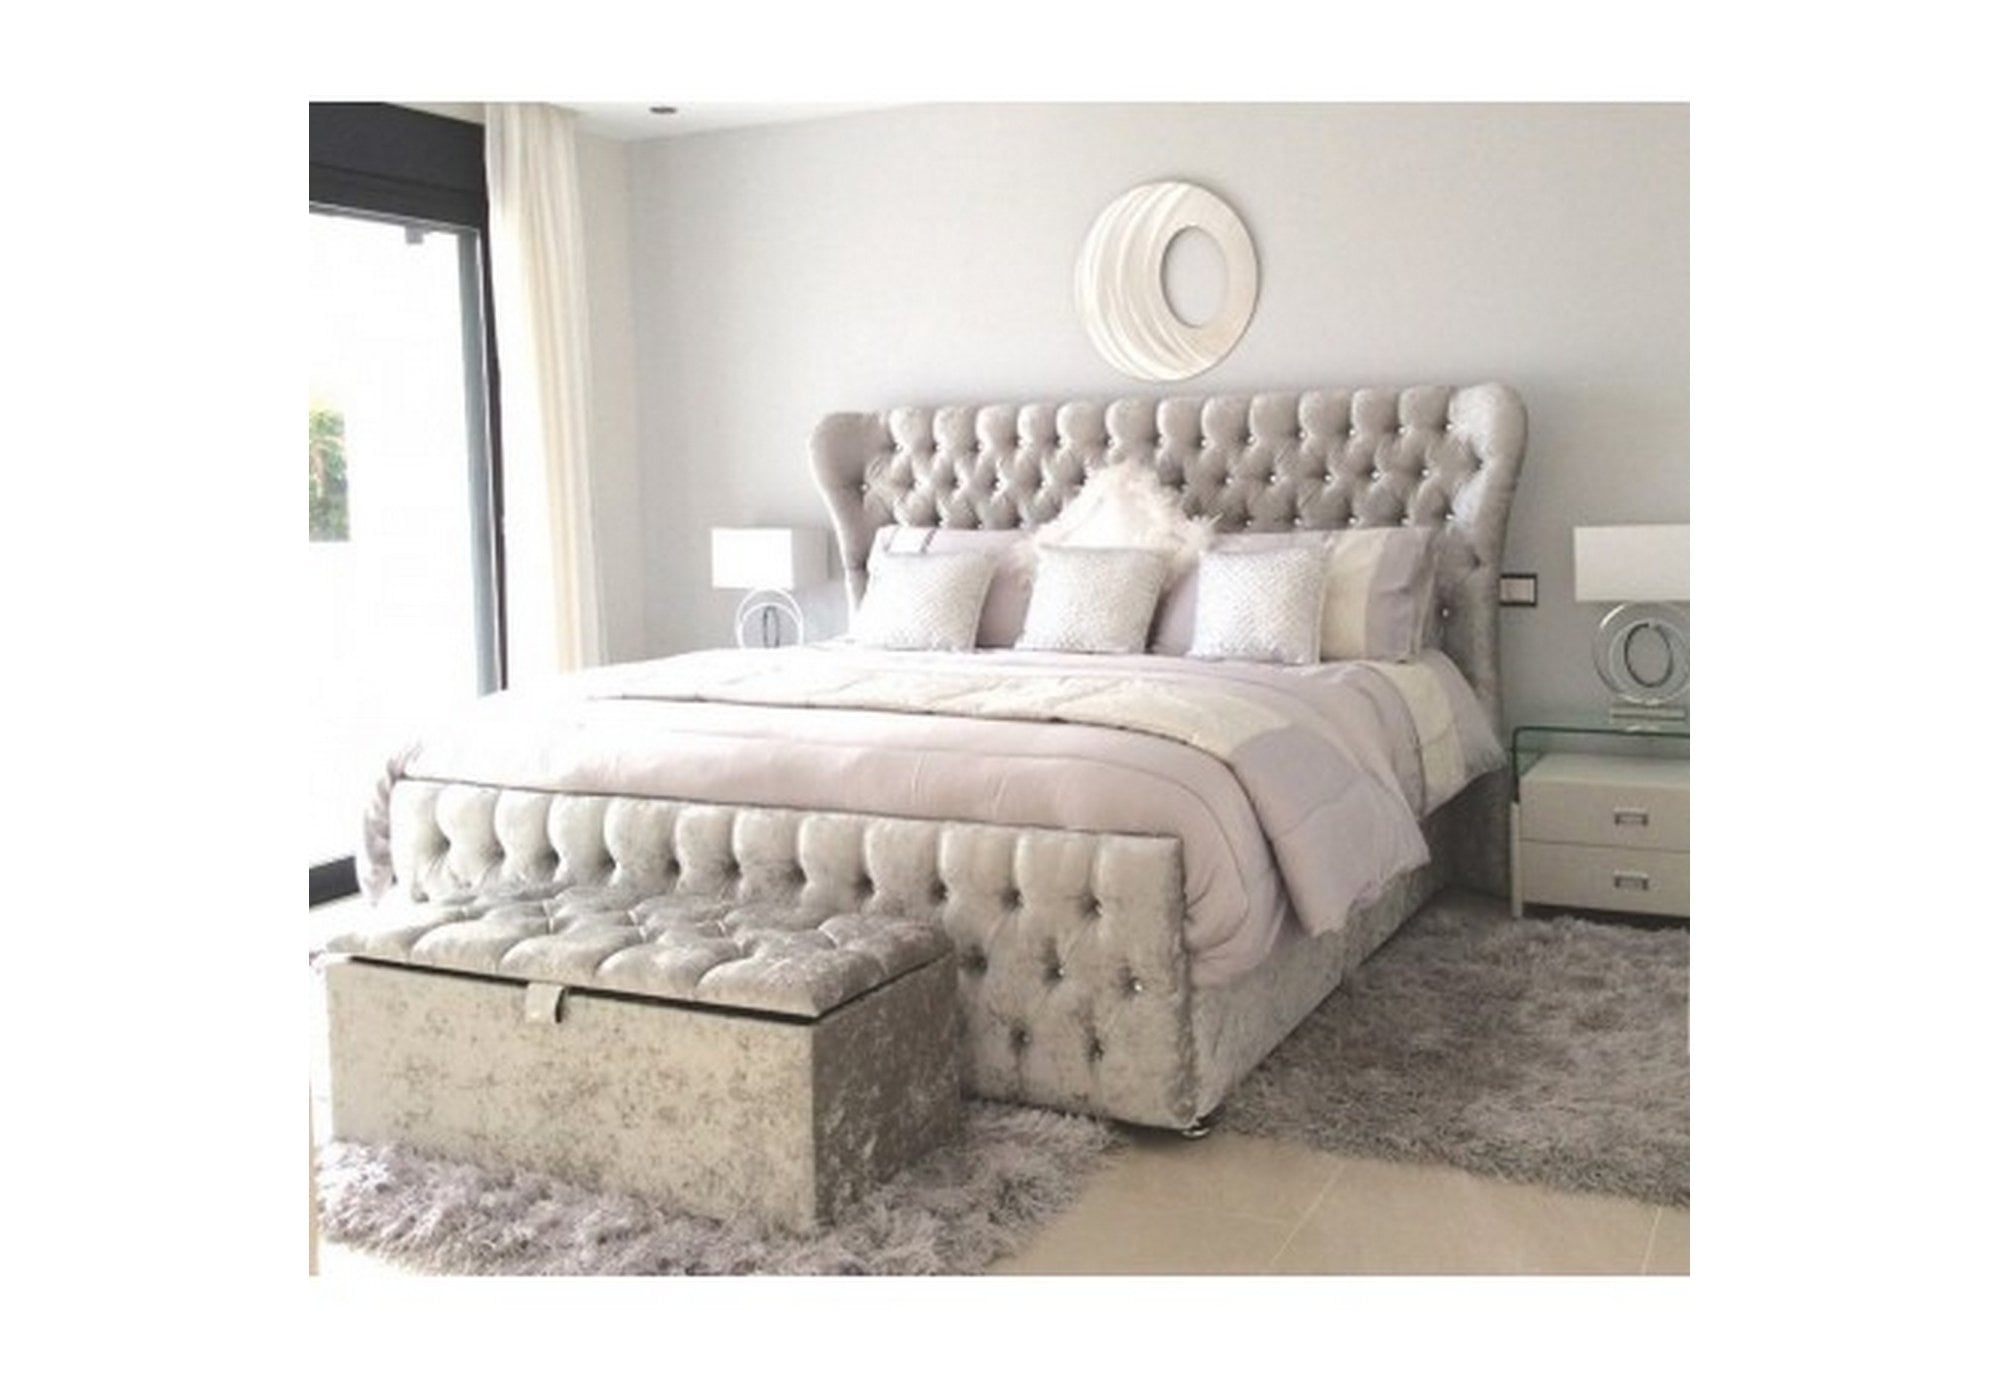 Europa Beds Europa Fly 6ft Bed Silver Crushed Velvet Bed With Winged Headboard Beds From Beds 4 Less Uk